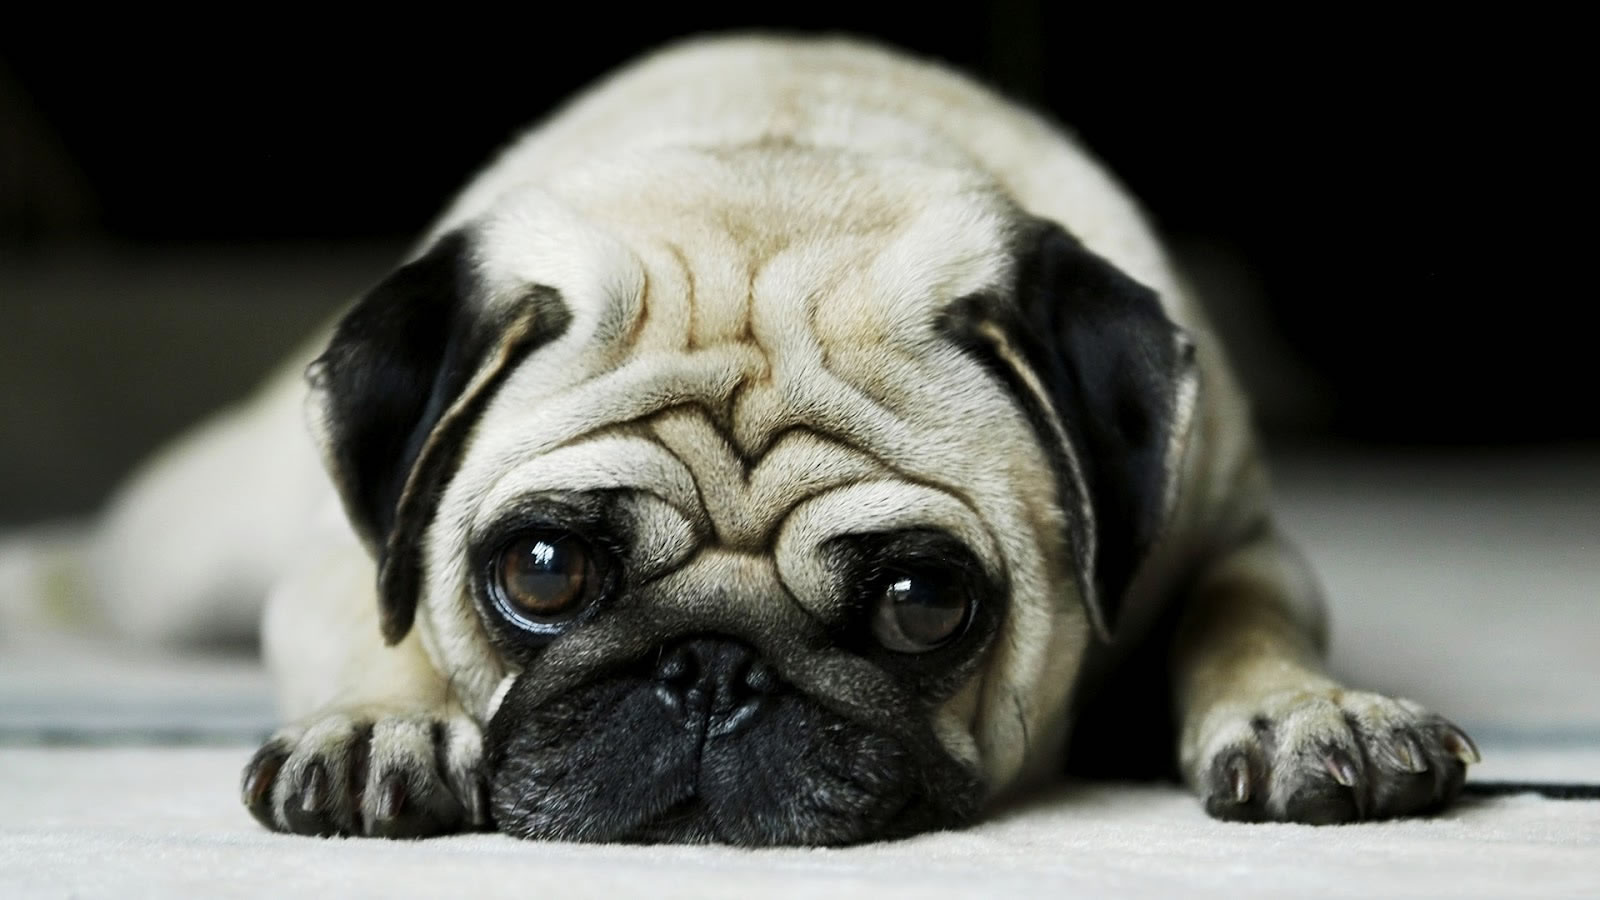 Black Pug Puppy Cute Wallpaper